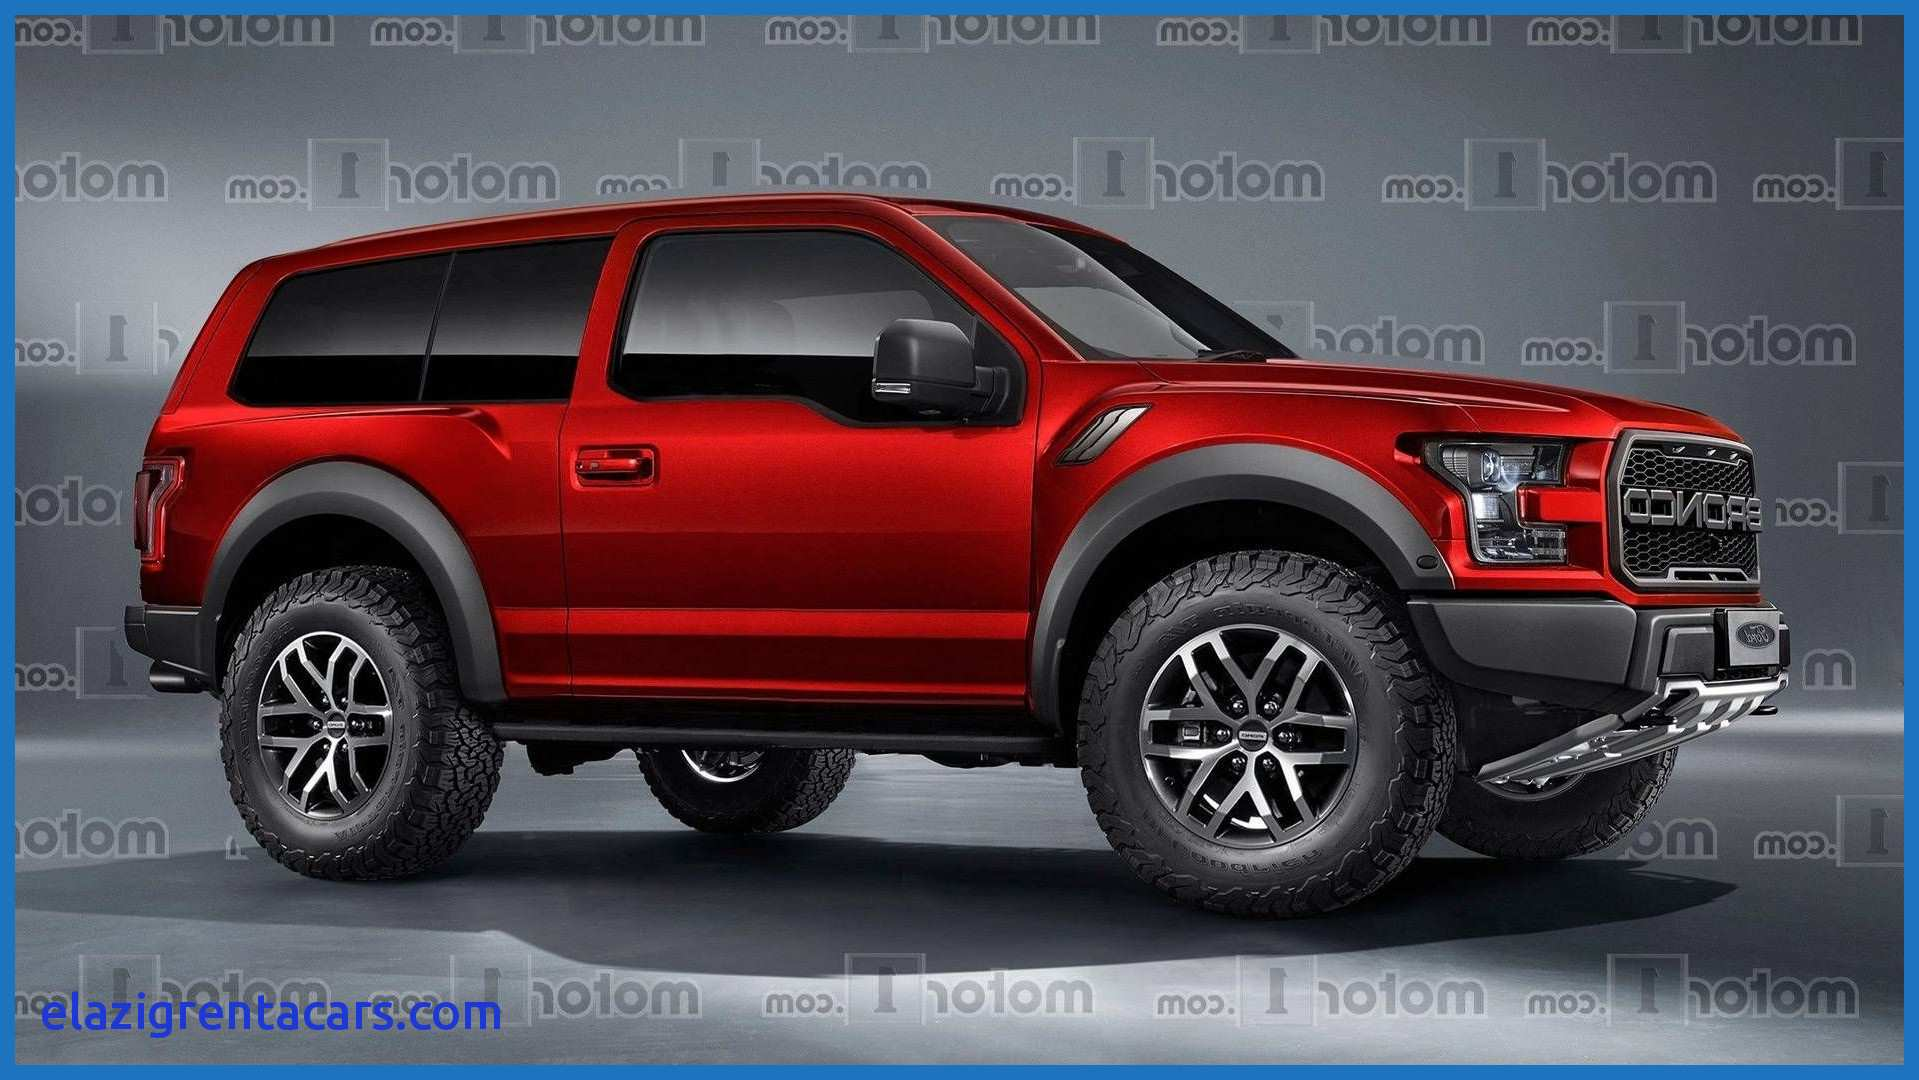 75 The Best 2020 Chevy Blazer K 5 Photos